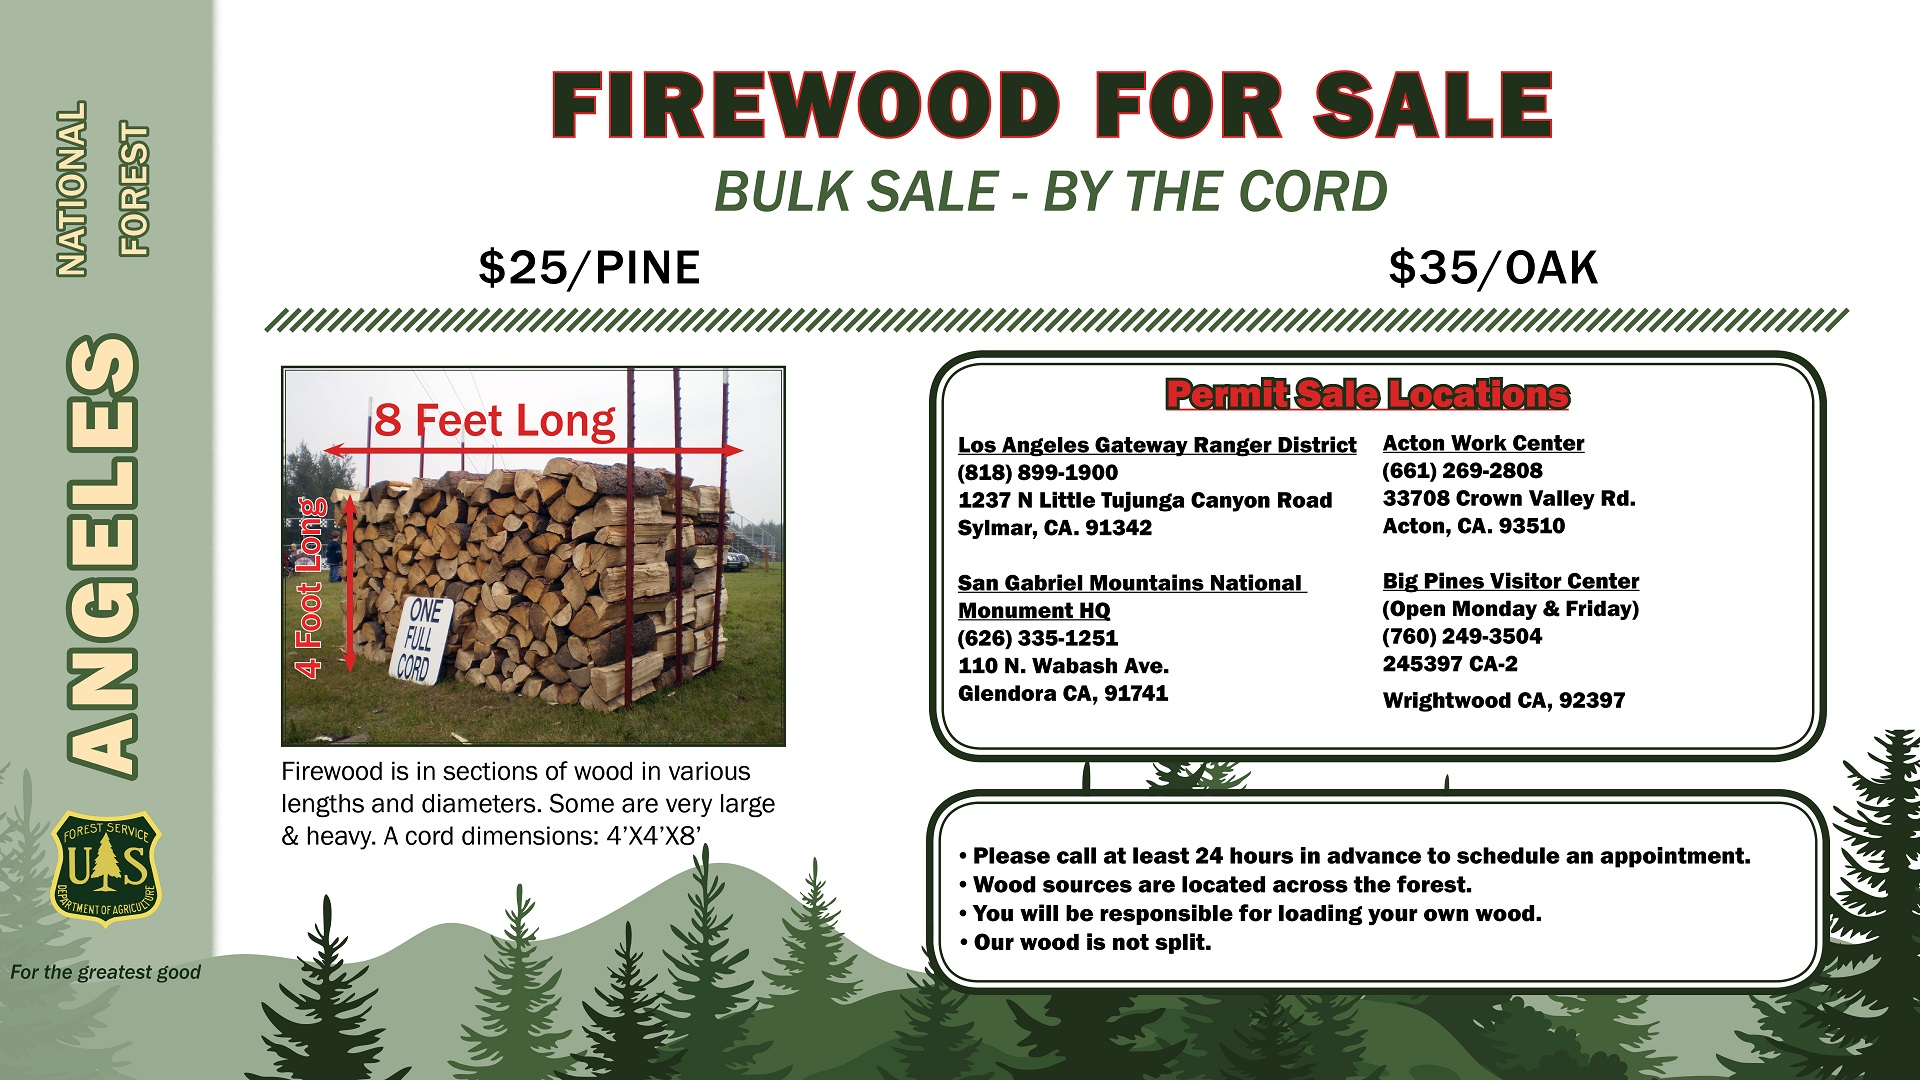 We sell cords of firewood $25/pine and $35/oak. Please call your local Forest Service office for inf